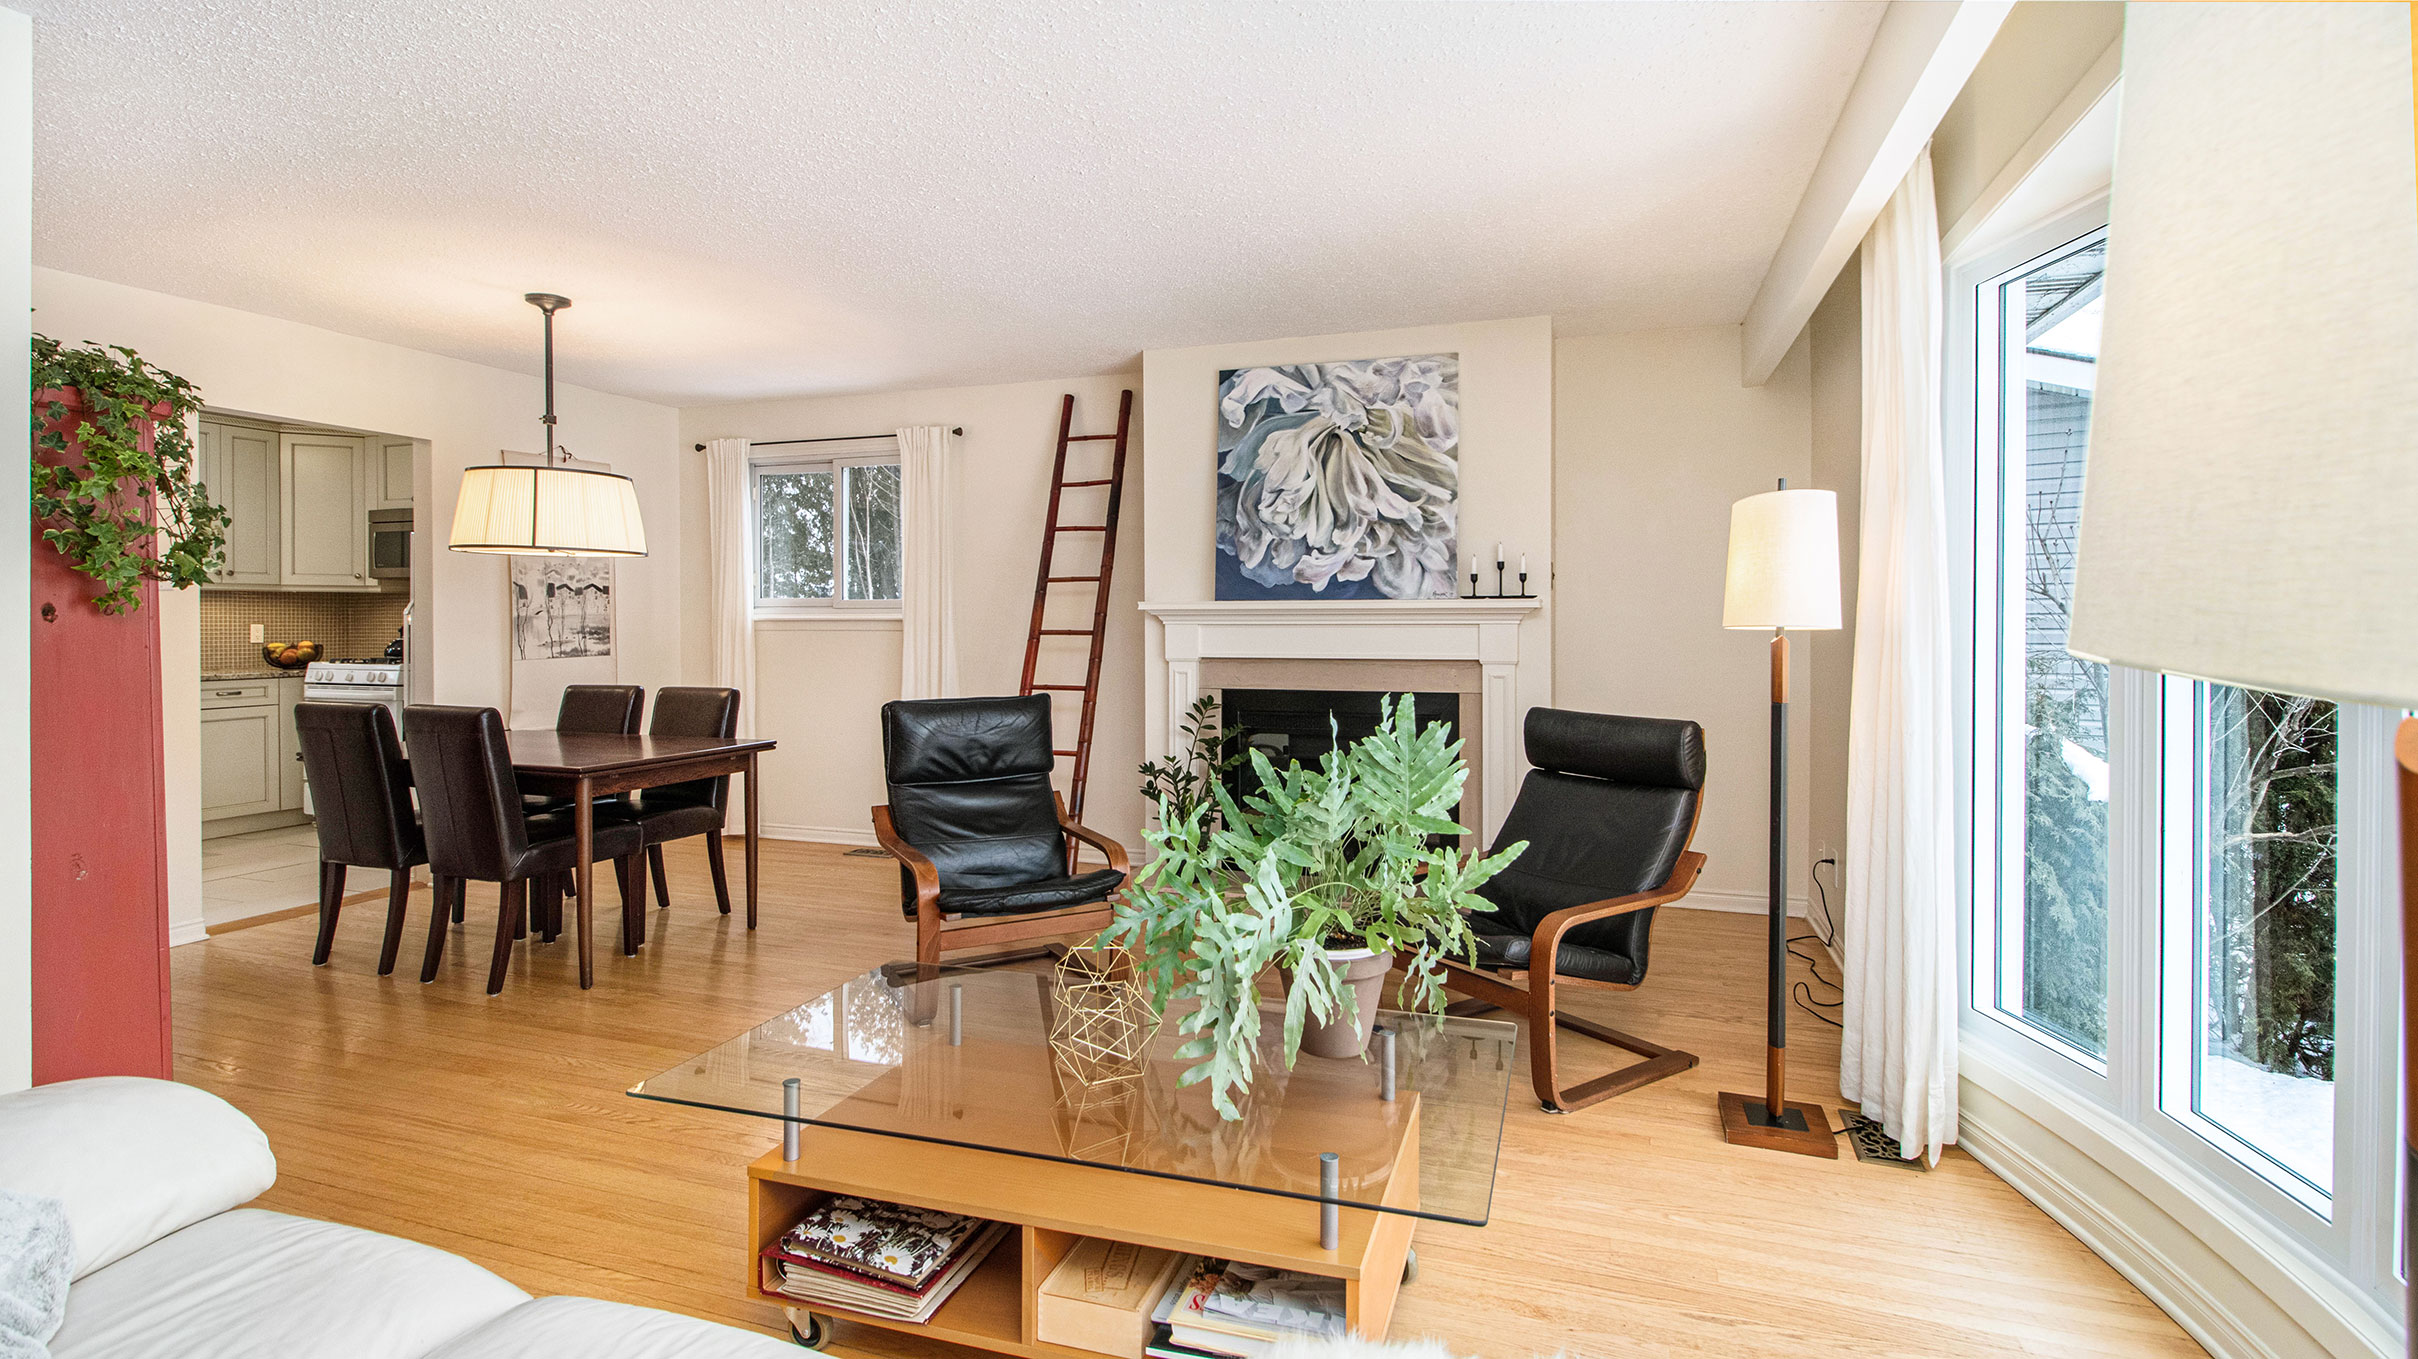 Natural light pouring in from the new bay windows, natural gas fireplace, beautiful hardwood flooring, a room couldn't be more inviting.